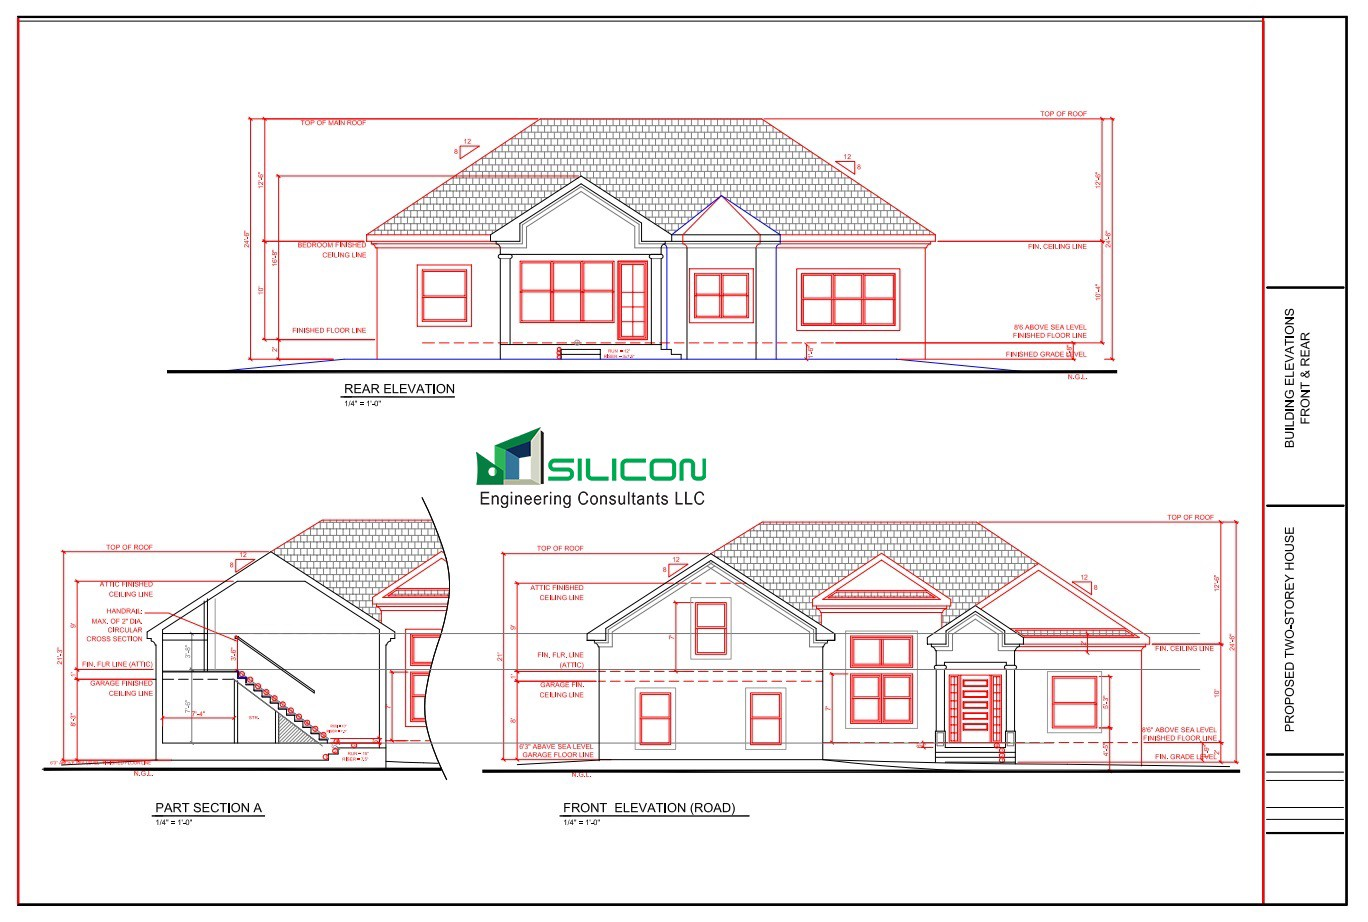 Building Drawing Plan Elevation Section : Architectural interior construction plans drawings